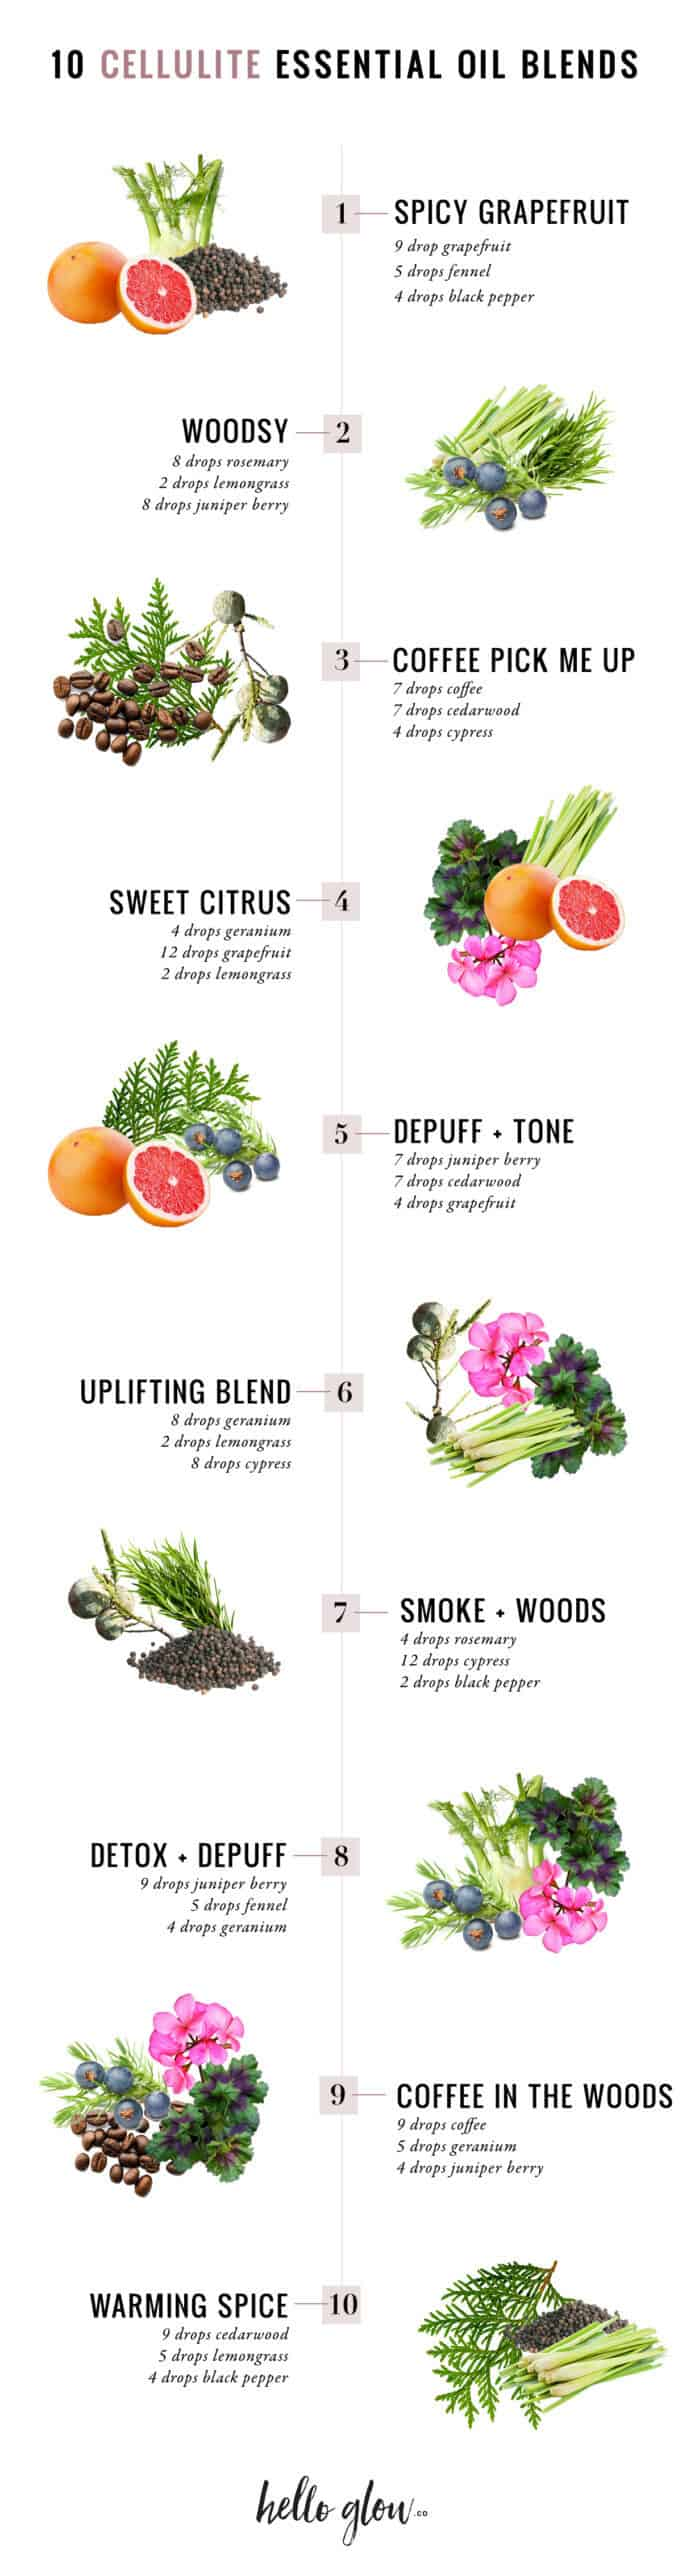 10 Essential Oil Blends for Cellulite - Hello Glow